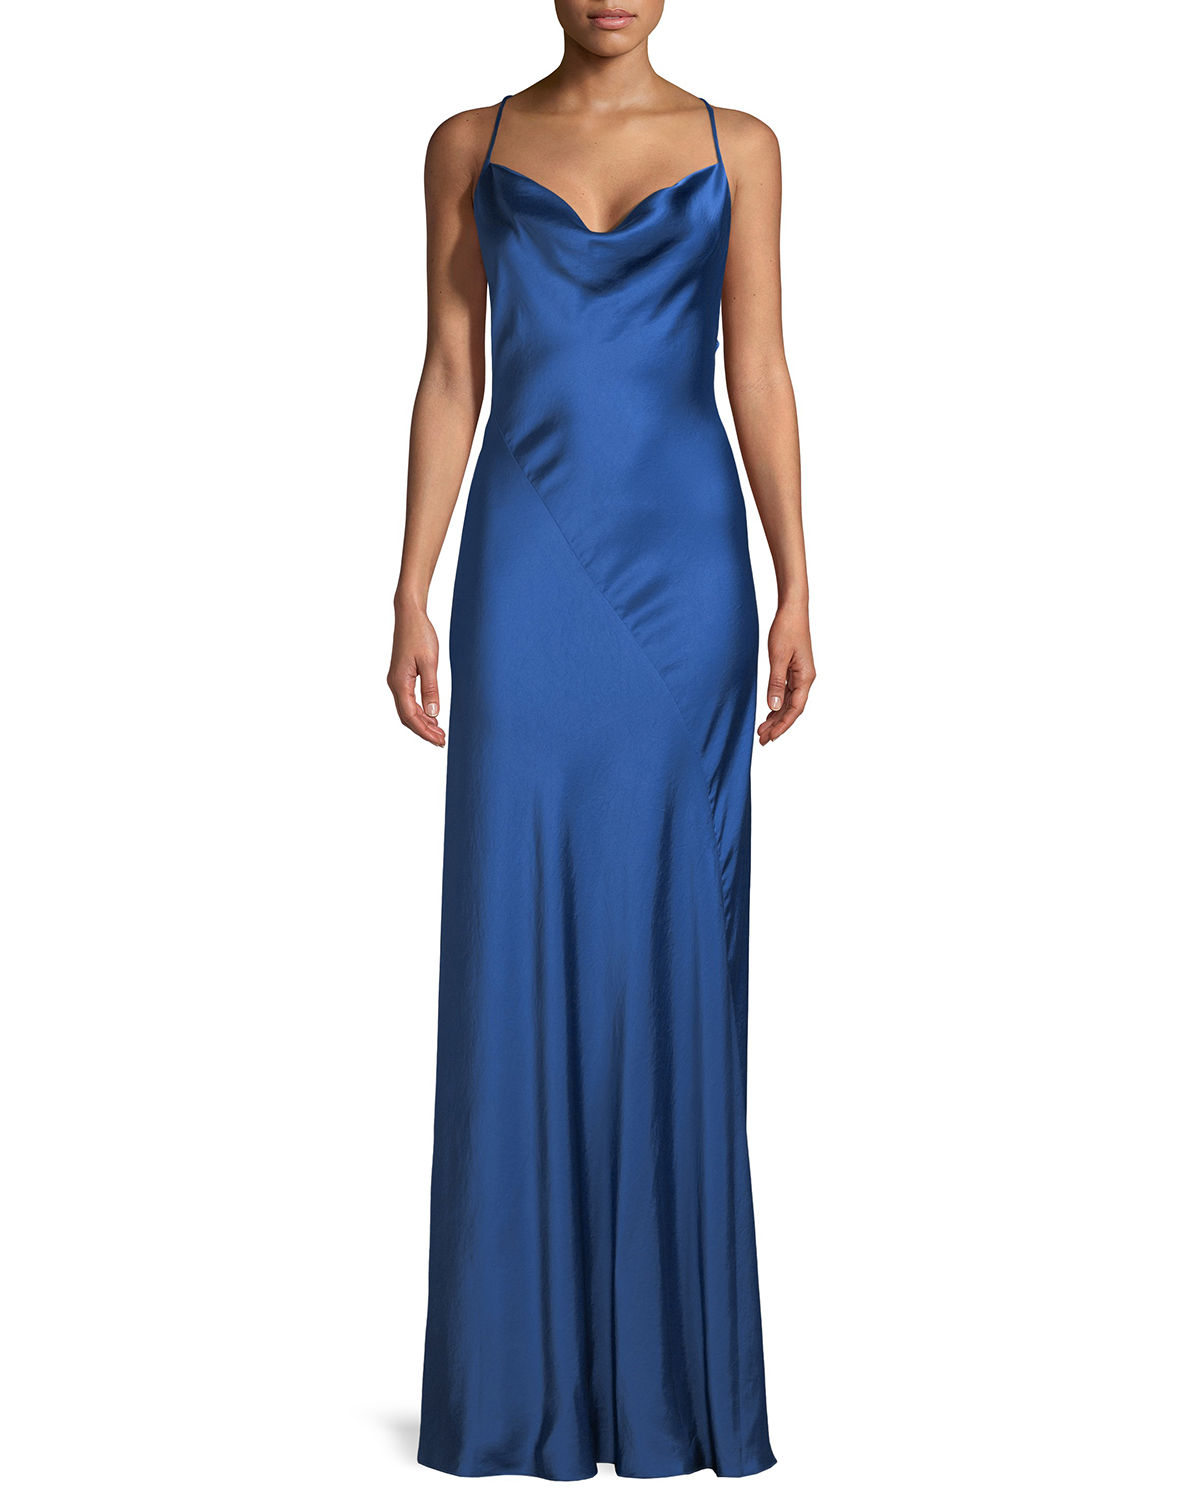 Cowl Neck Satin Wedding Dresses: Diane Von Furstenberg Sleeveless Cowl-Neck Bias-Seam Satin